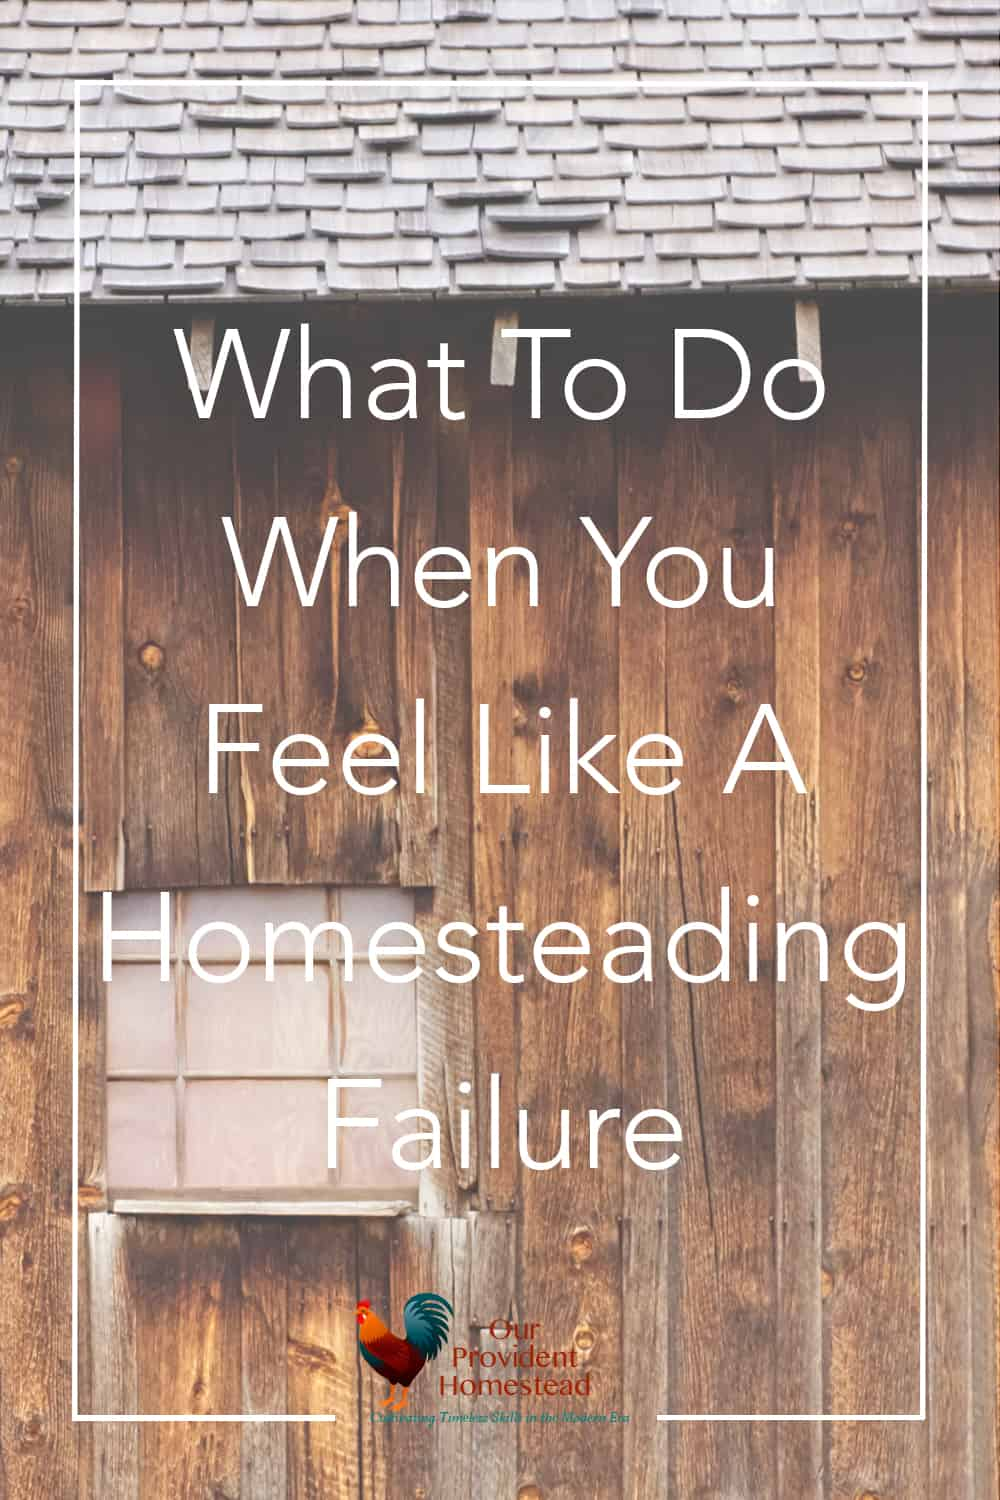 Do you ever feel like homesteading is just too hard? Click here to discuss feeling like a homesteading failure and what you can do about it. #homestead #homesteading